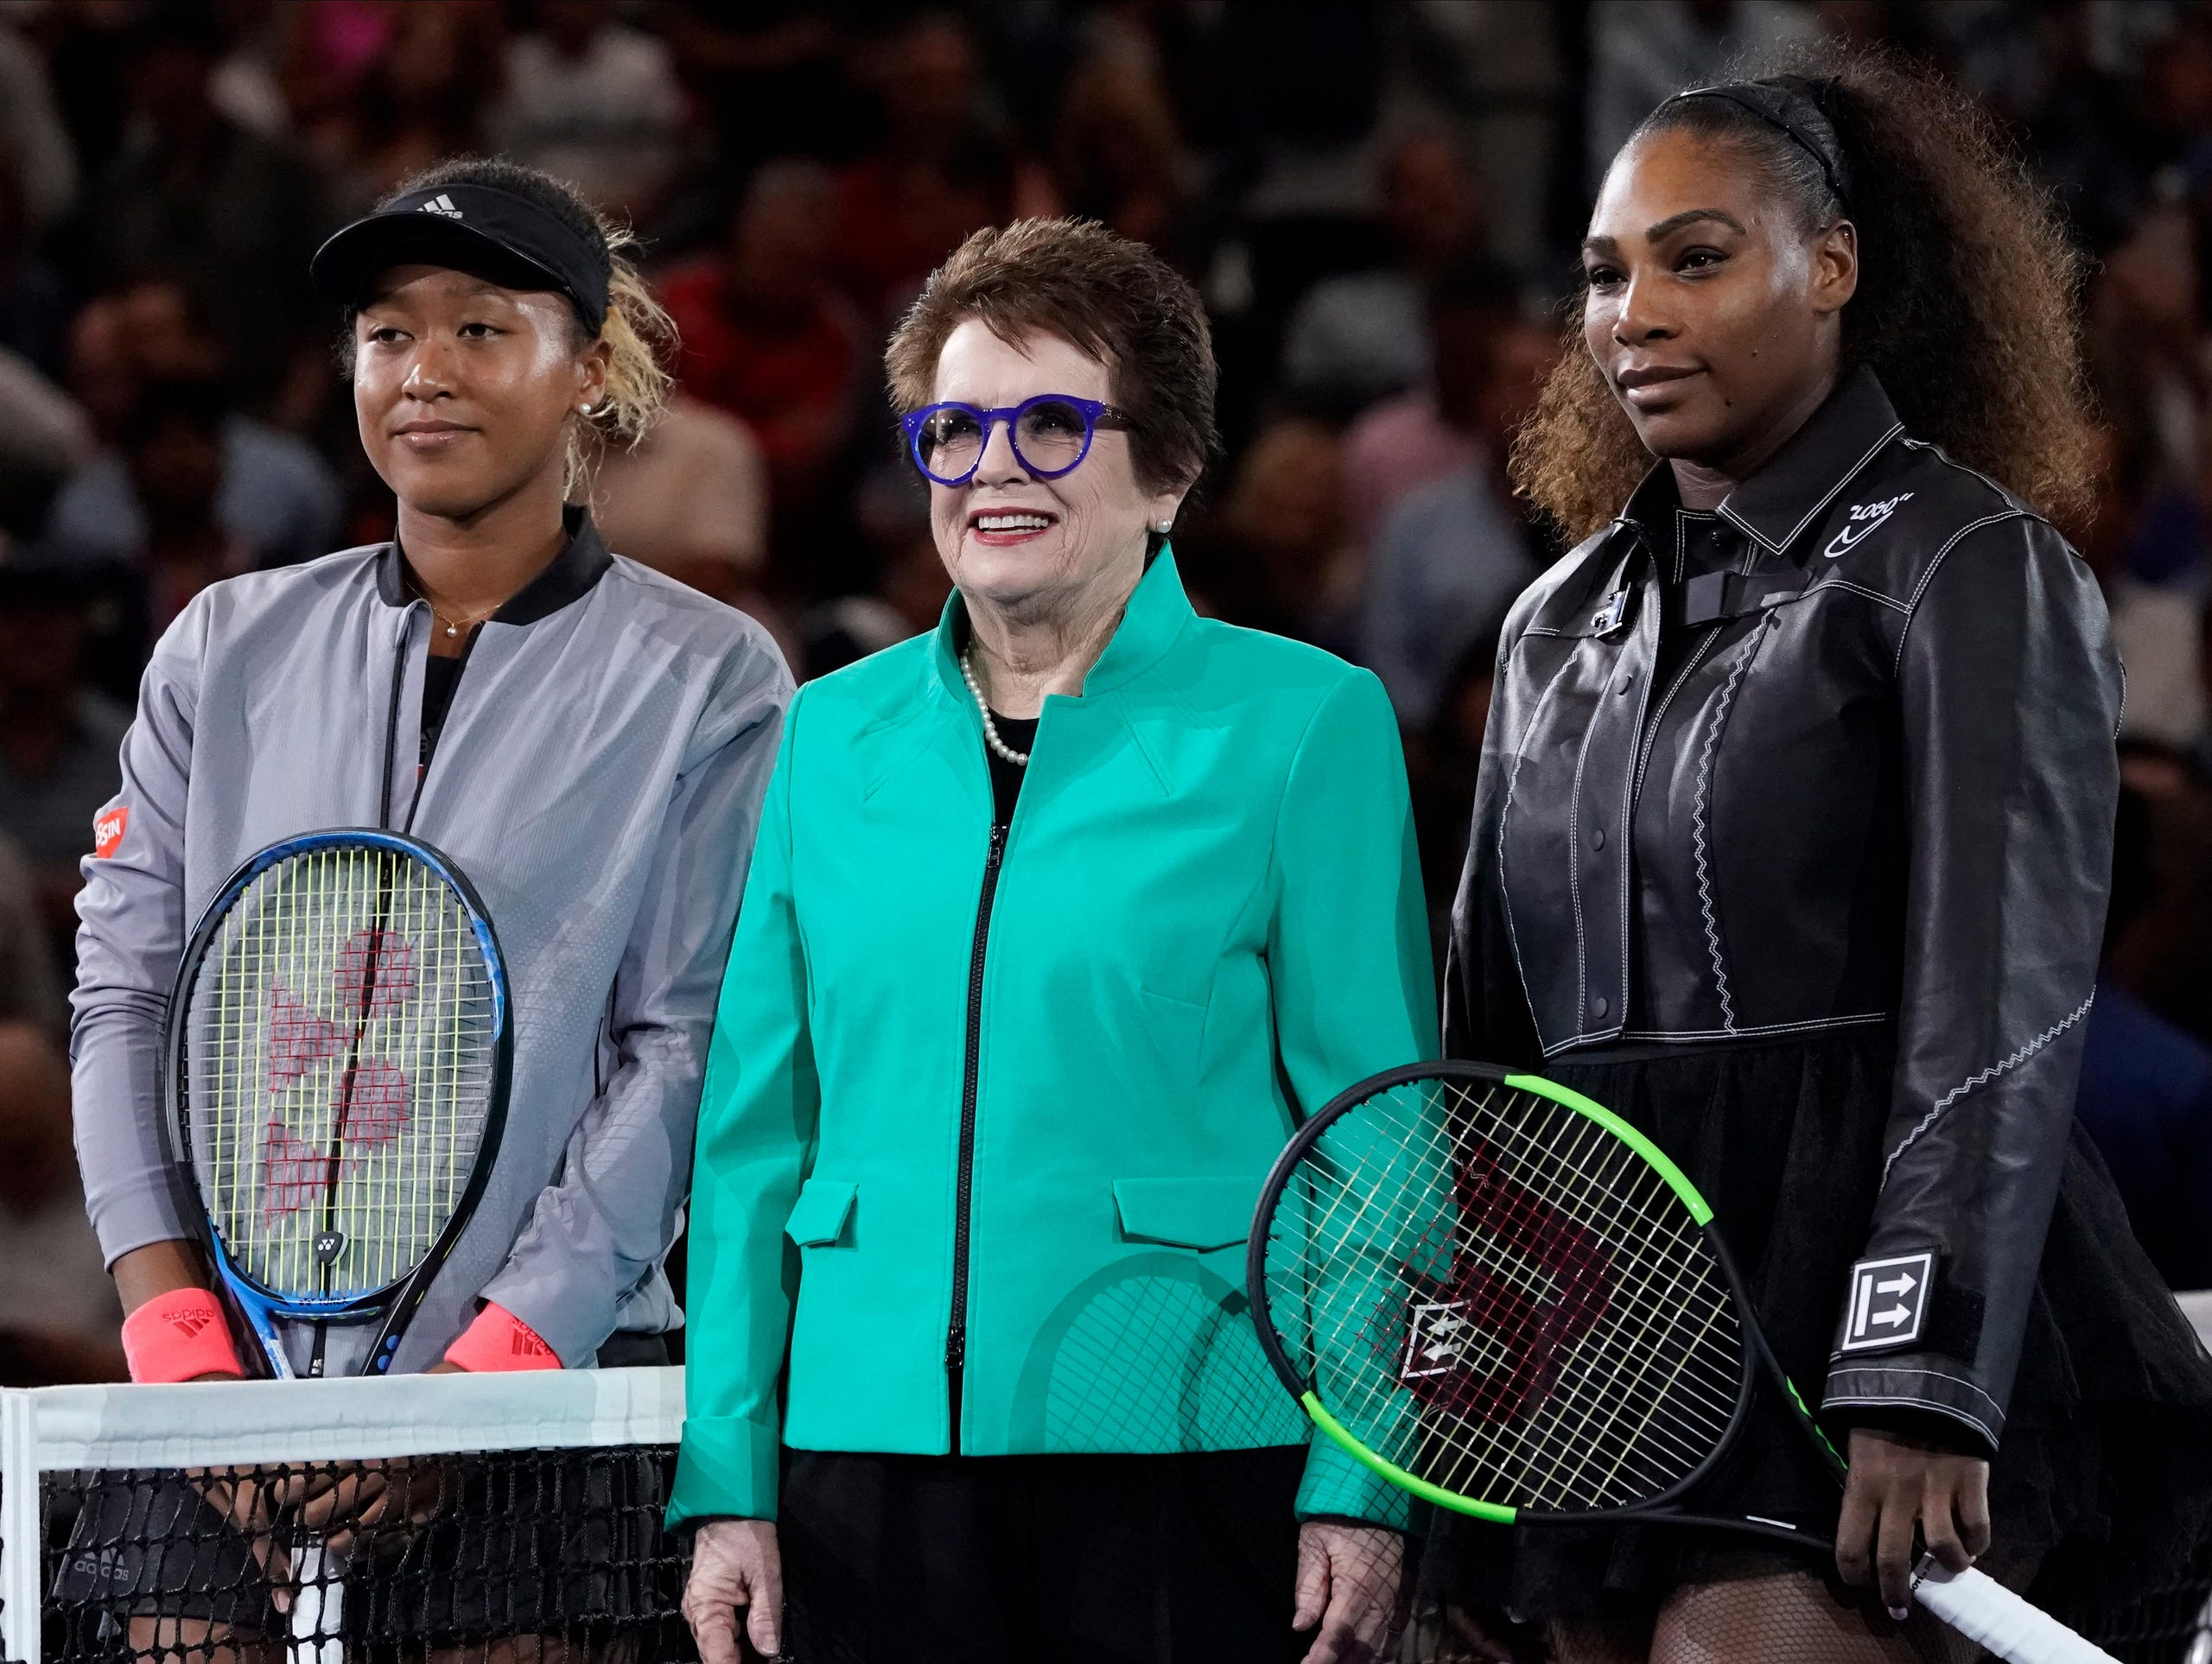 Naomi Osaka, Billy Jean King, and Serena Williams before the women's final on day thirteen of the 2018 U.S. Open tennis tournament at USTA Billie Jean King National Tennis Center on Sept. 8, 2018.